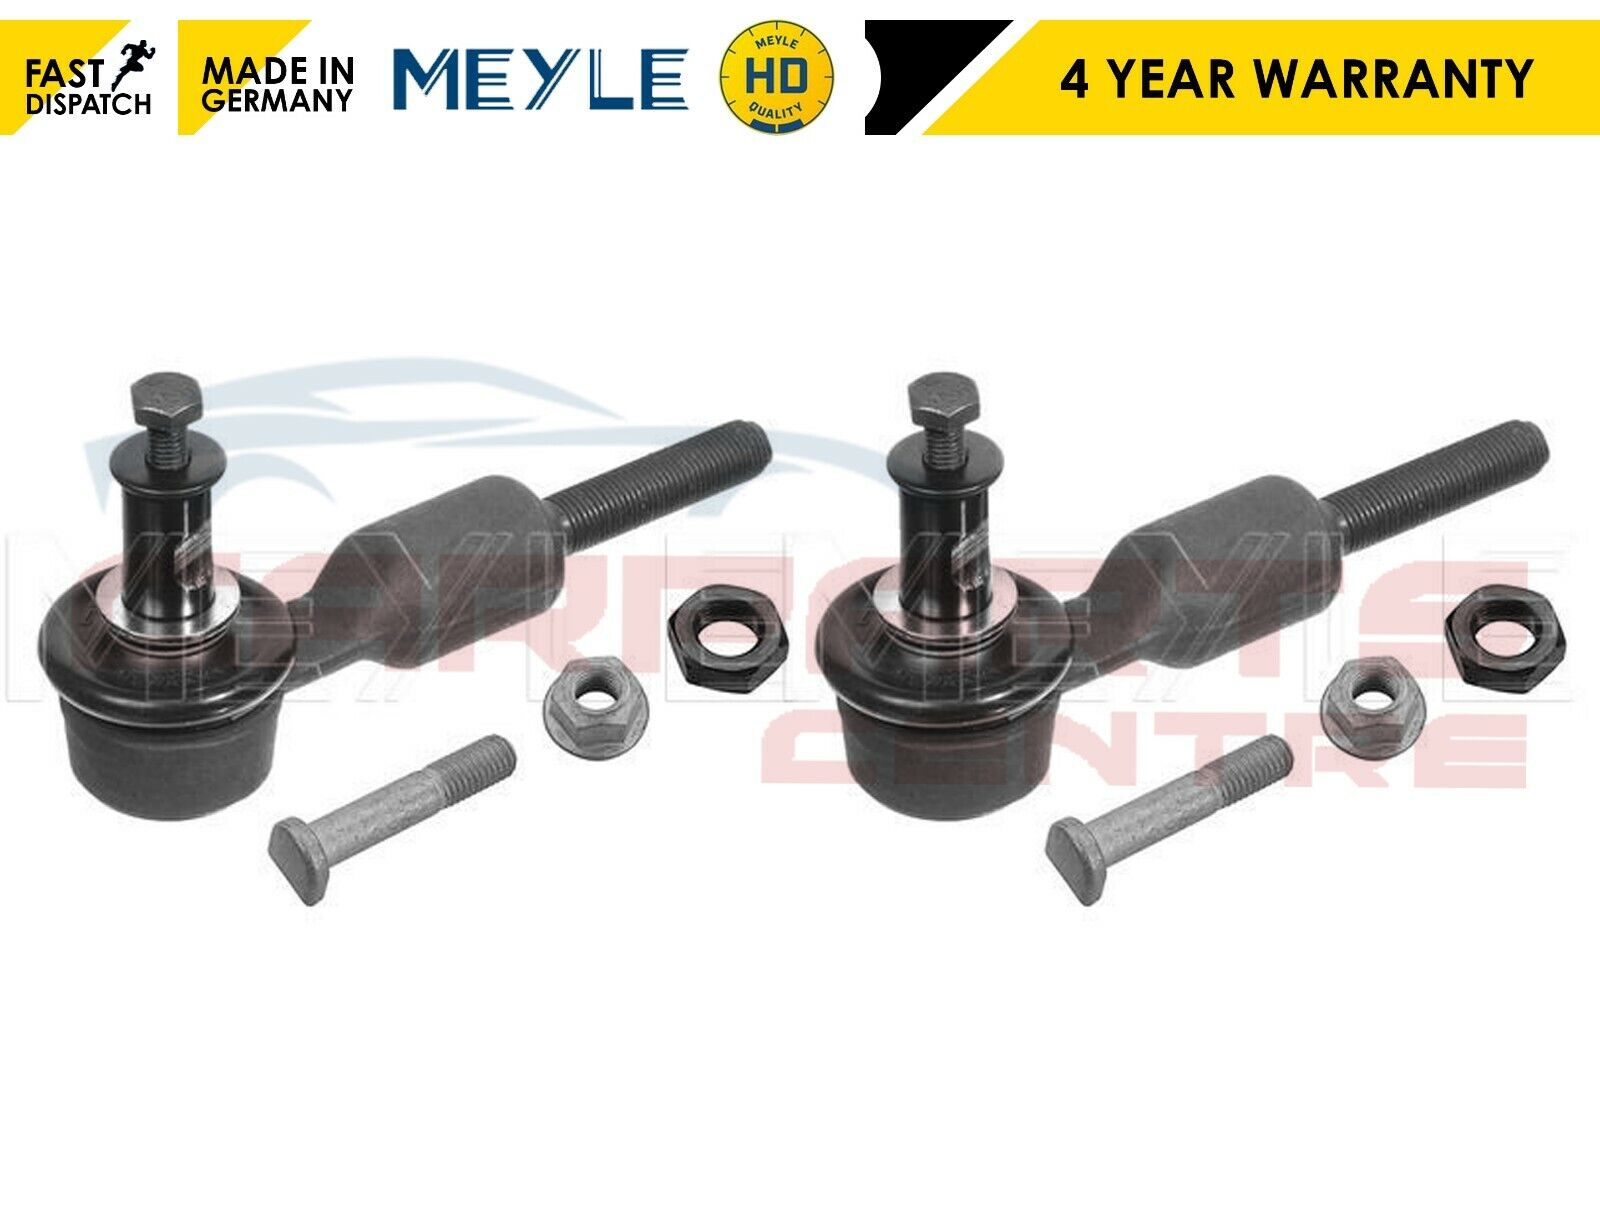 2006 Fits Audi A4 Quattro Front Outer Steering Tie Rod End With Five Years Warranty